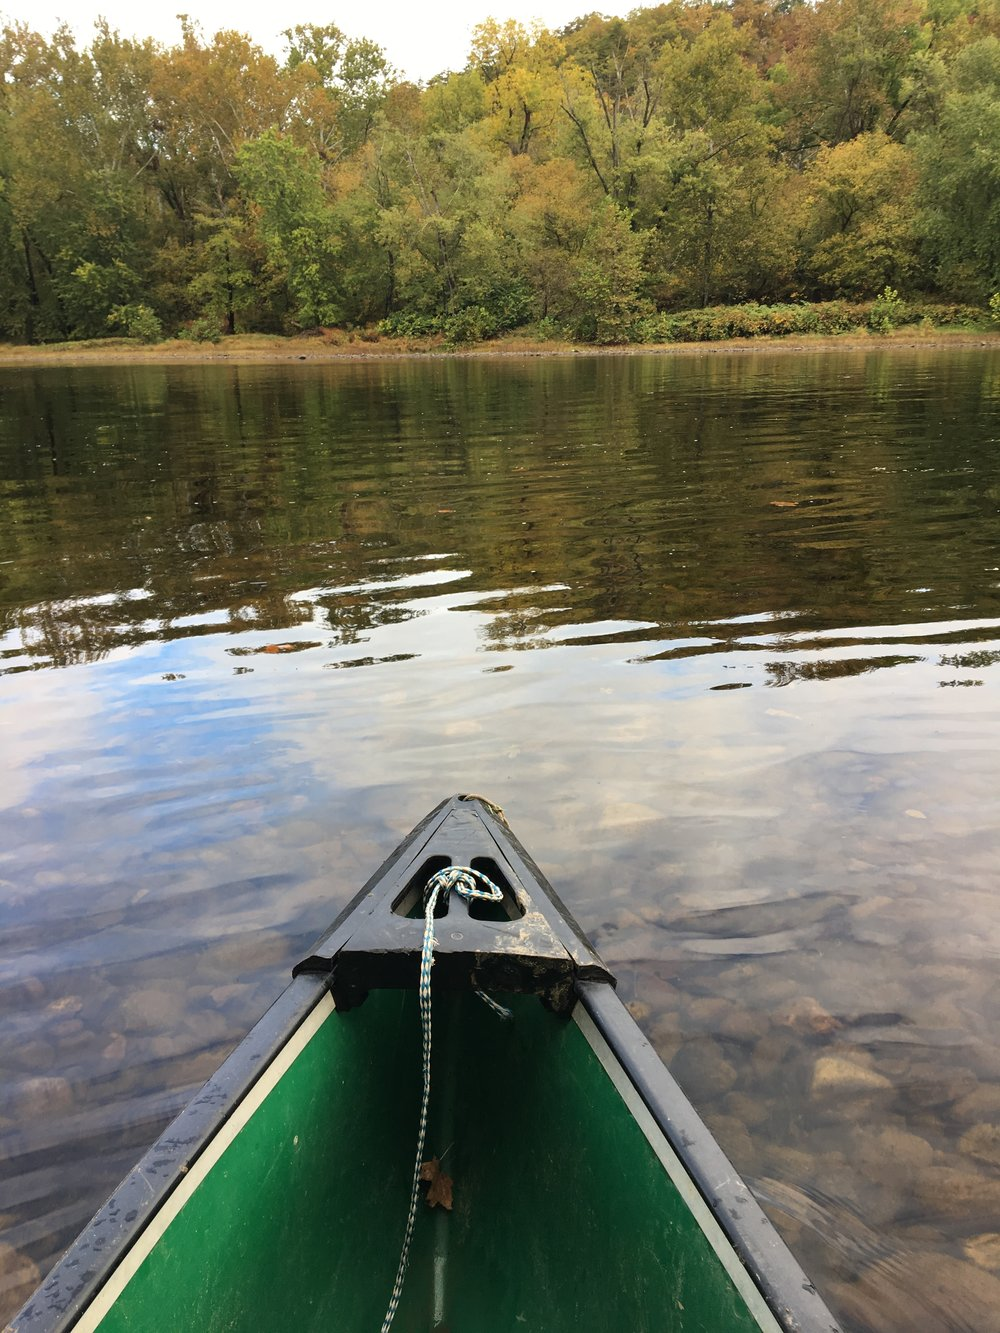 The Three Otters Eco Retreat is located at mile 151 on the C&O across the Potomac in West Virginia.  They will pick you up and drop you back off by canoe.